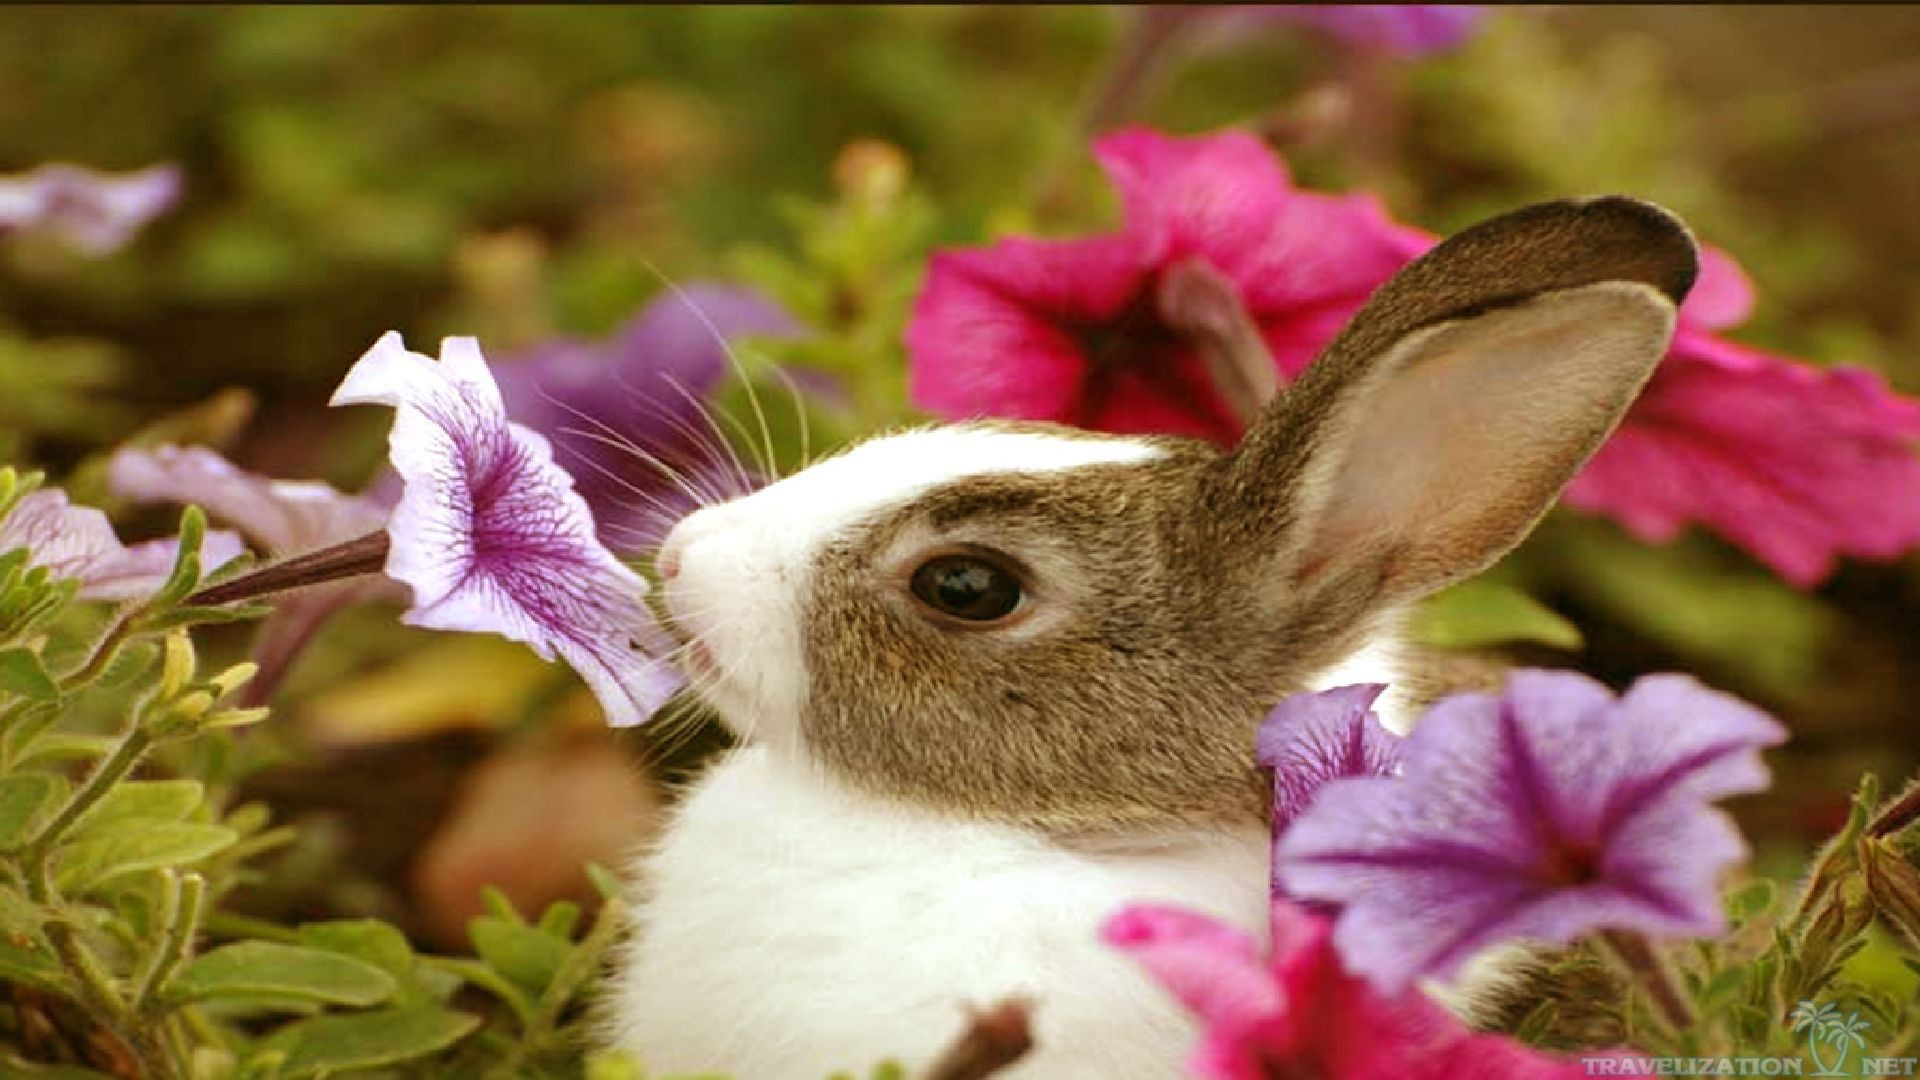 Cute baby animals wallpapers 61 images - Cute baby animal desktop backgrounds ...